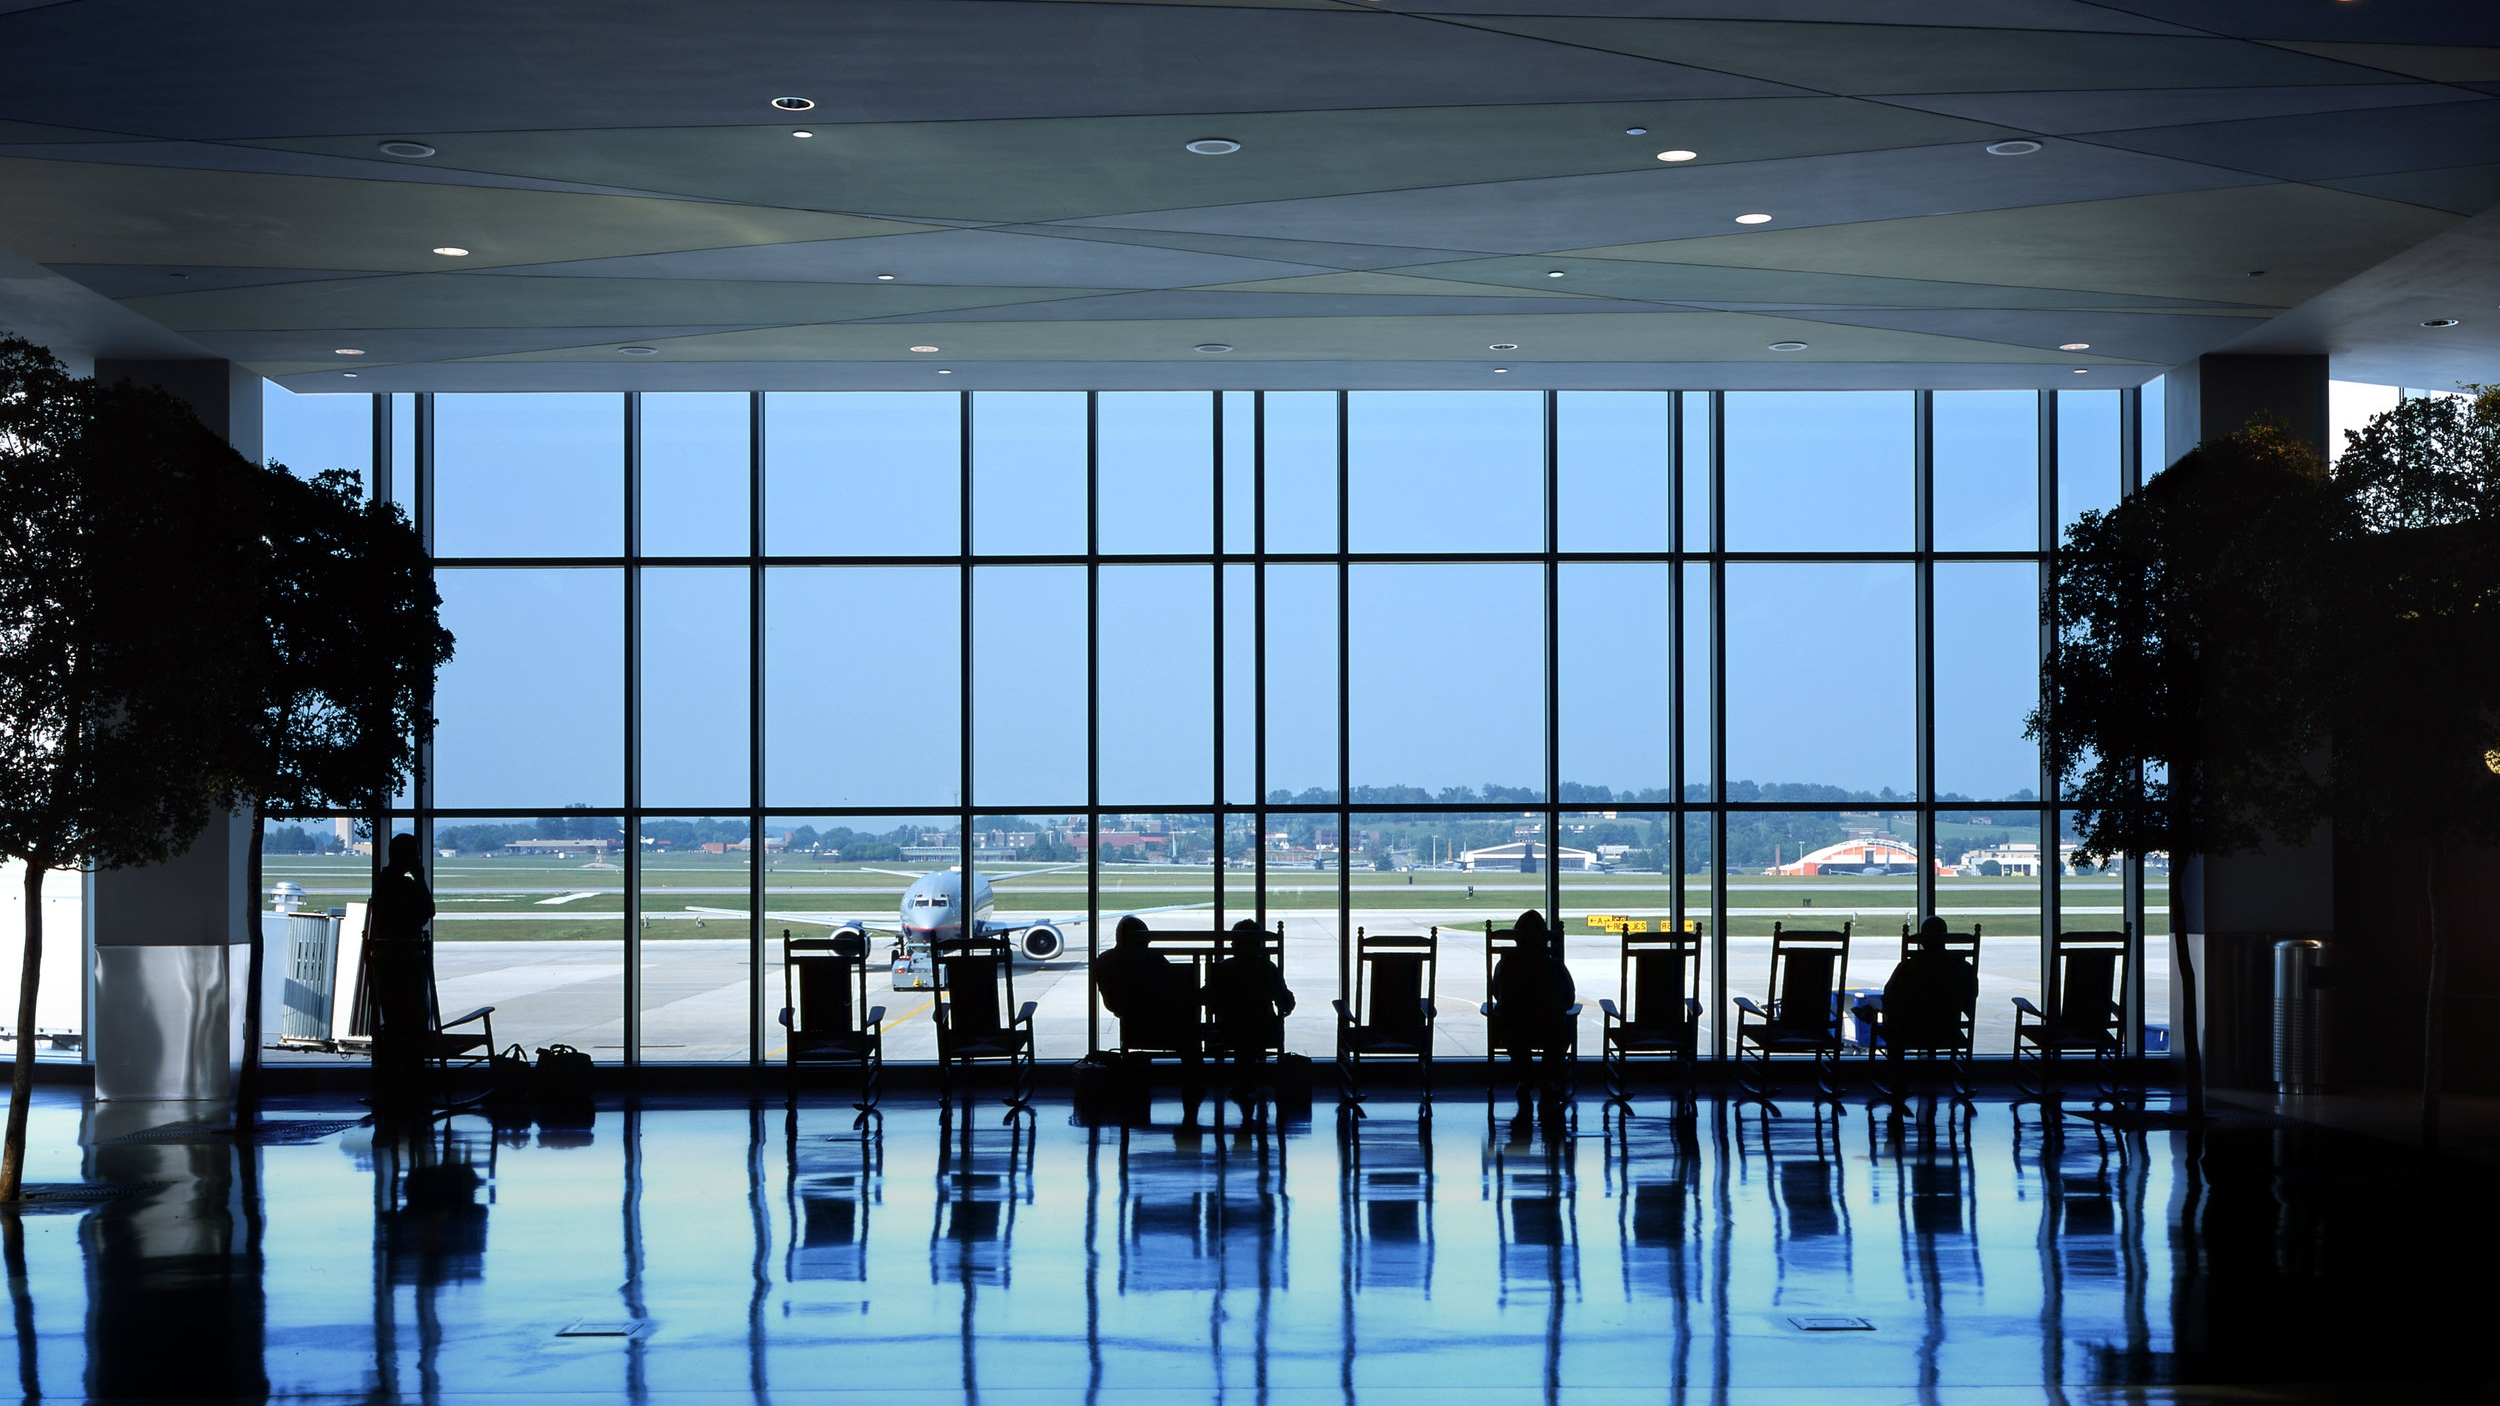 Concourse Window Composite.jpg